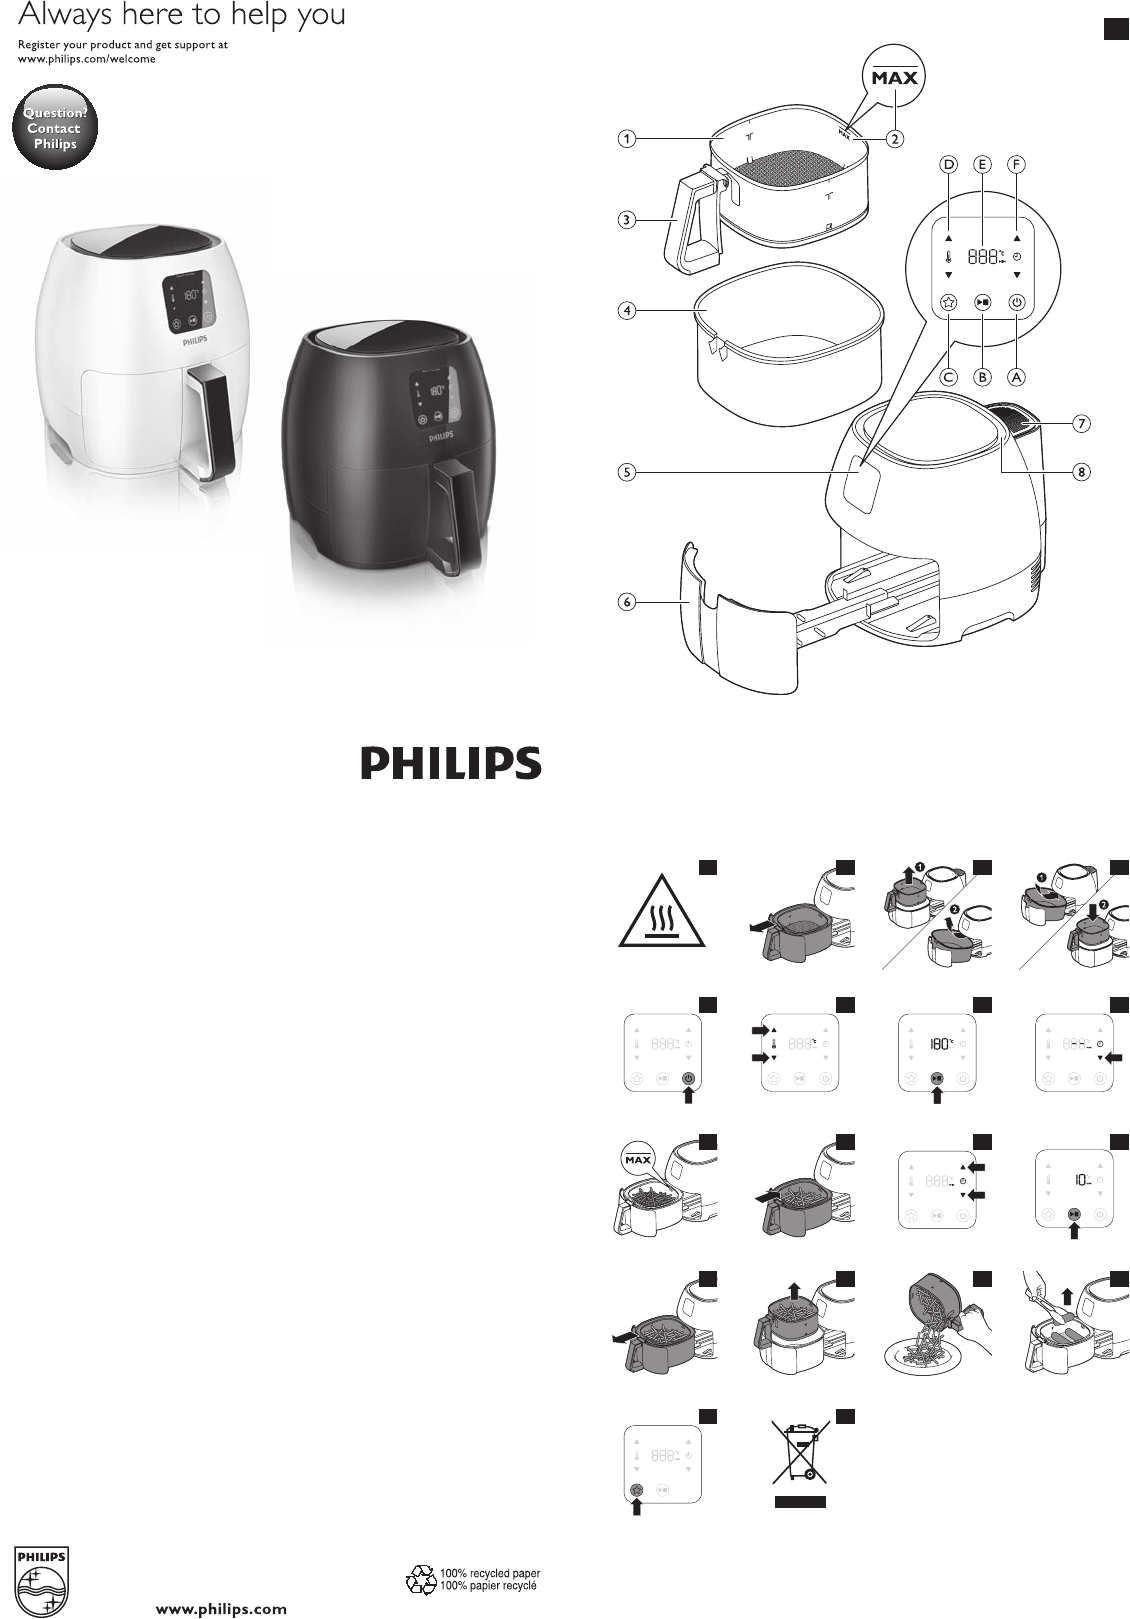 philips fryer hd9240 user guide manualsonline com rh kitchen manualsonline com philips airfryer hd9220 user manual philips airfryer hd9240 user manual